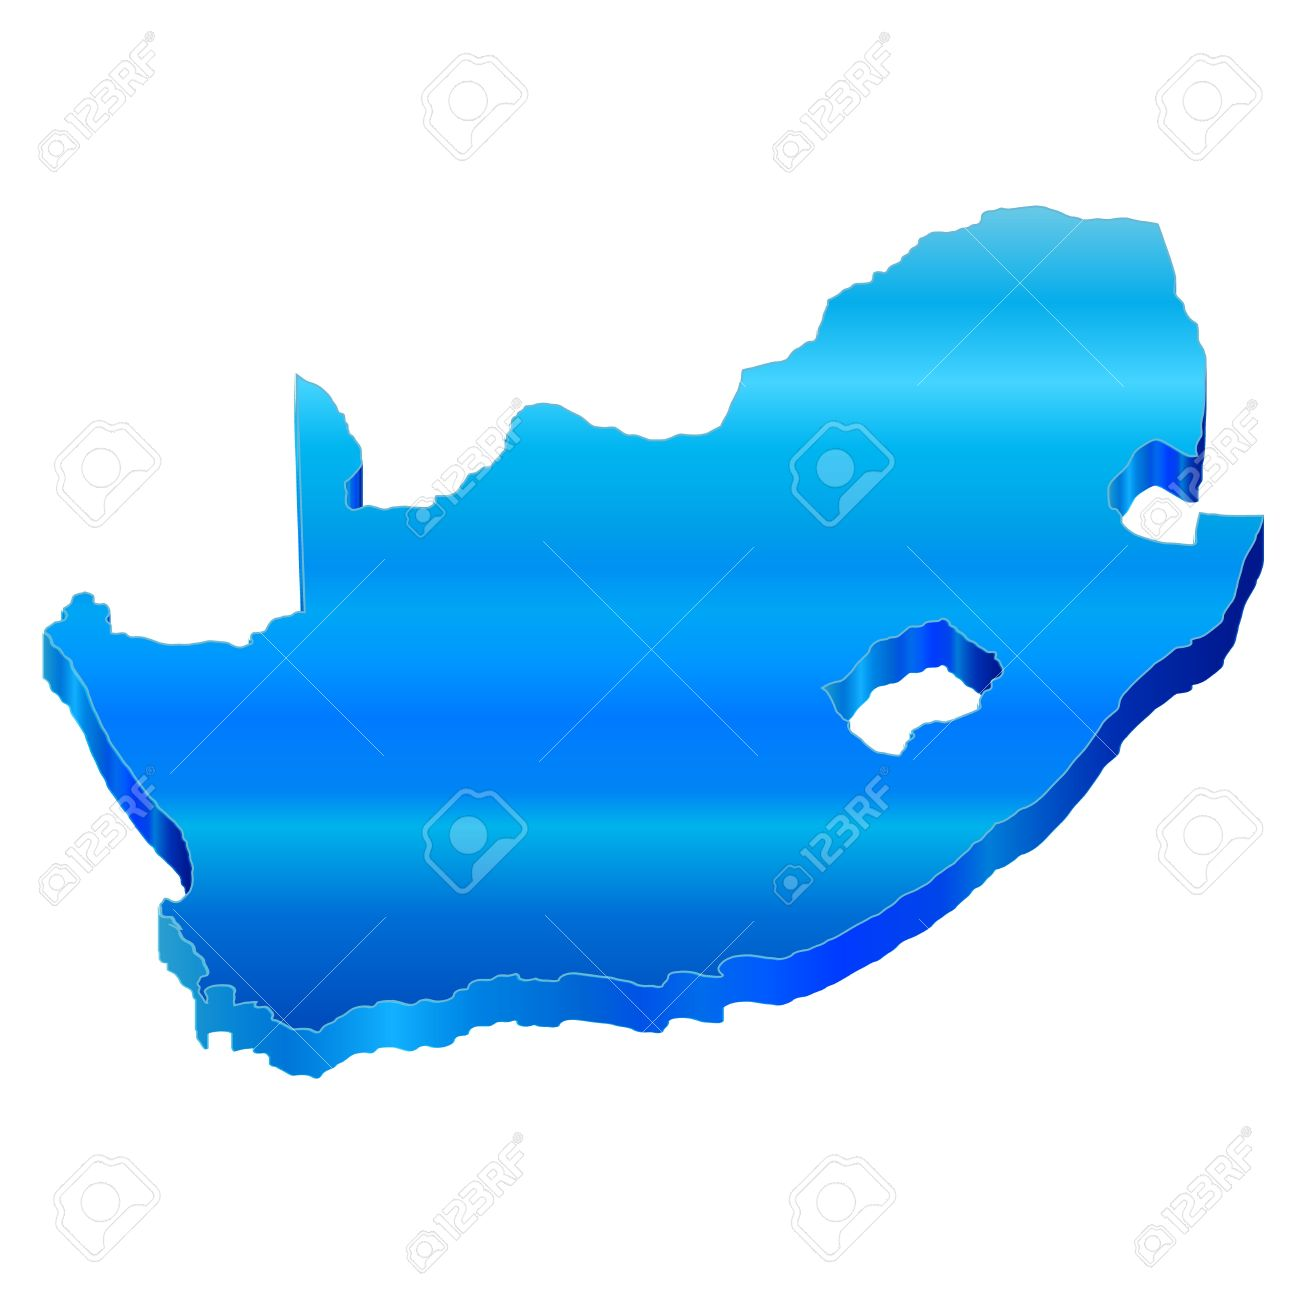 3D Map Of South Africa Royalty Free Cliparts Vectors And Stock